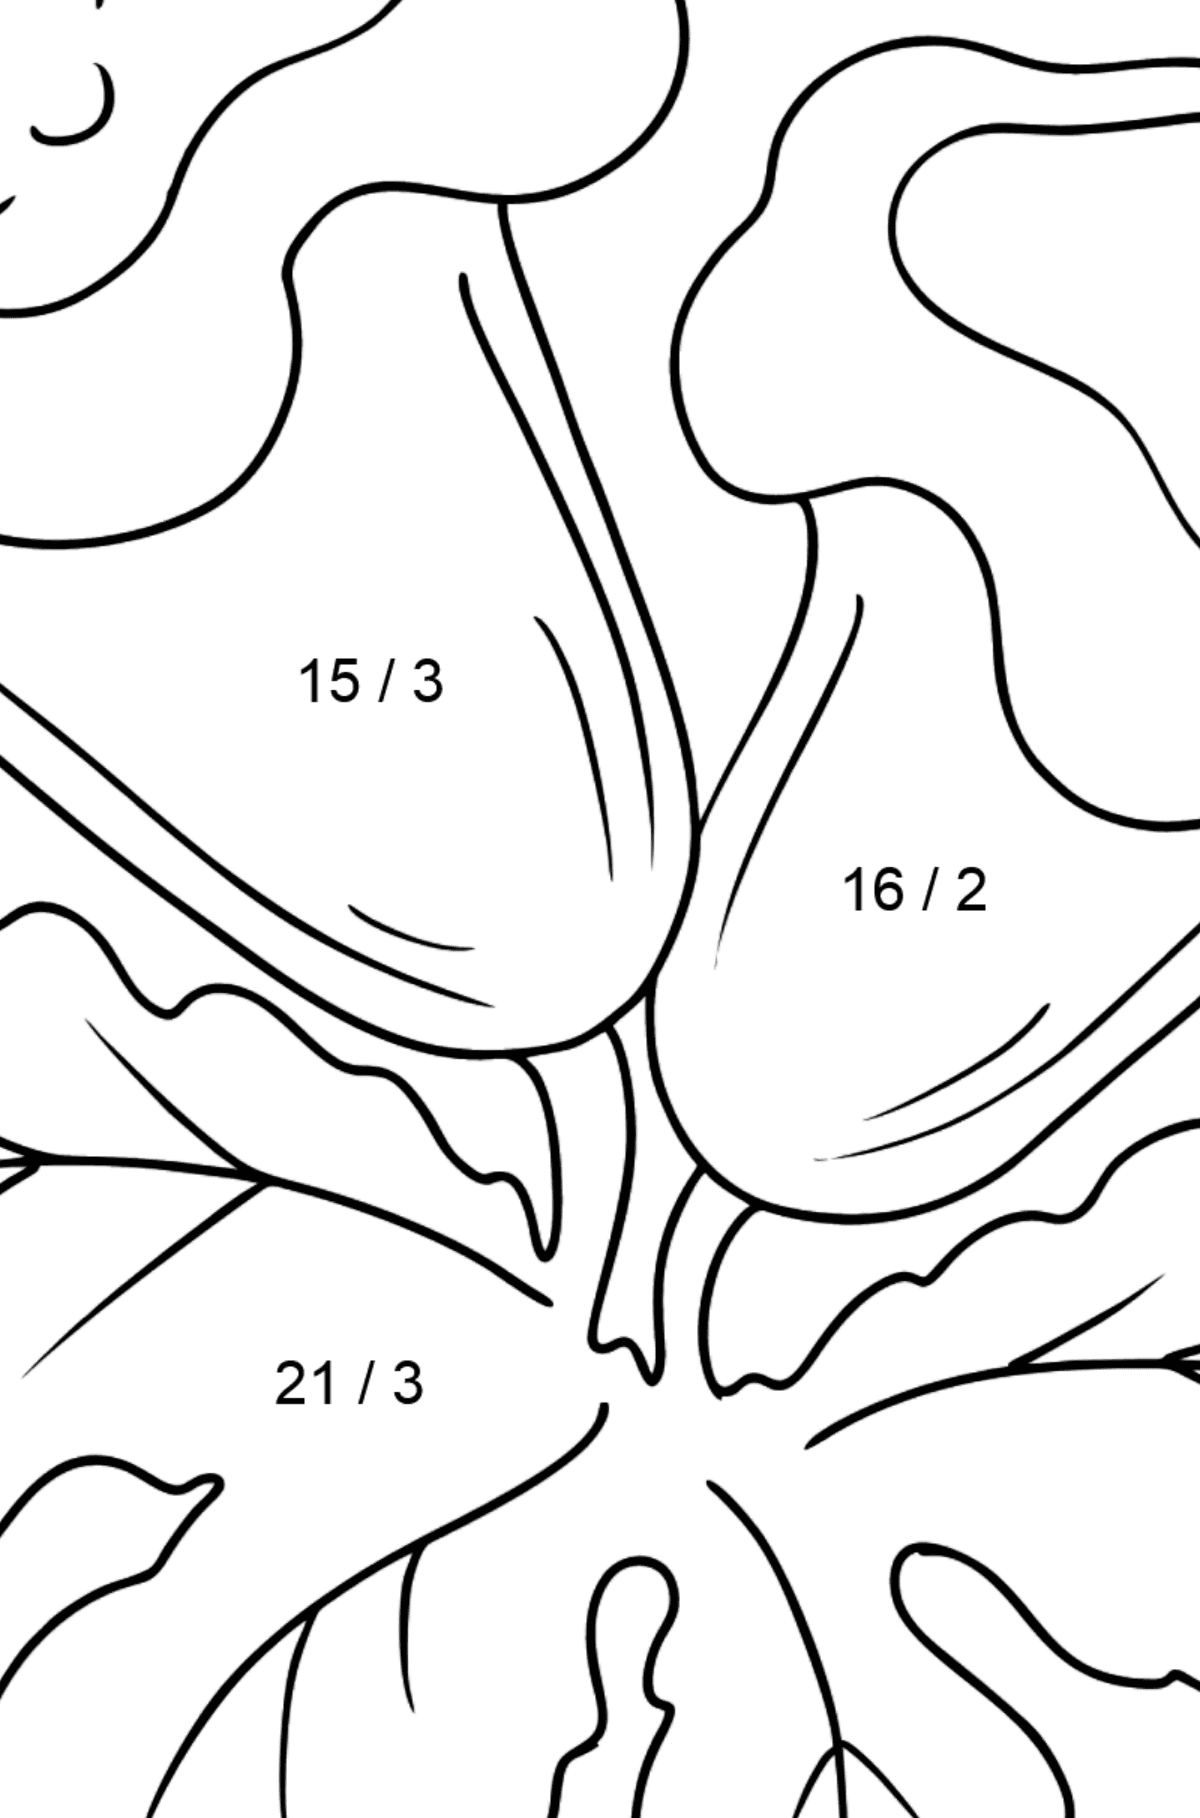 Coloring Page - Indoor flowers - Math Coloring - Division for Kids